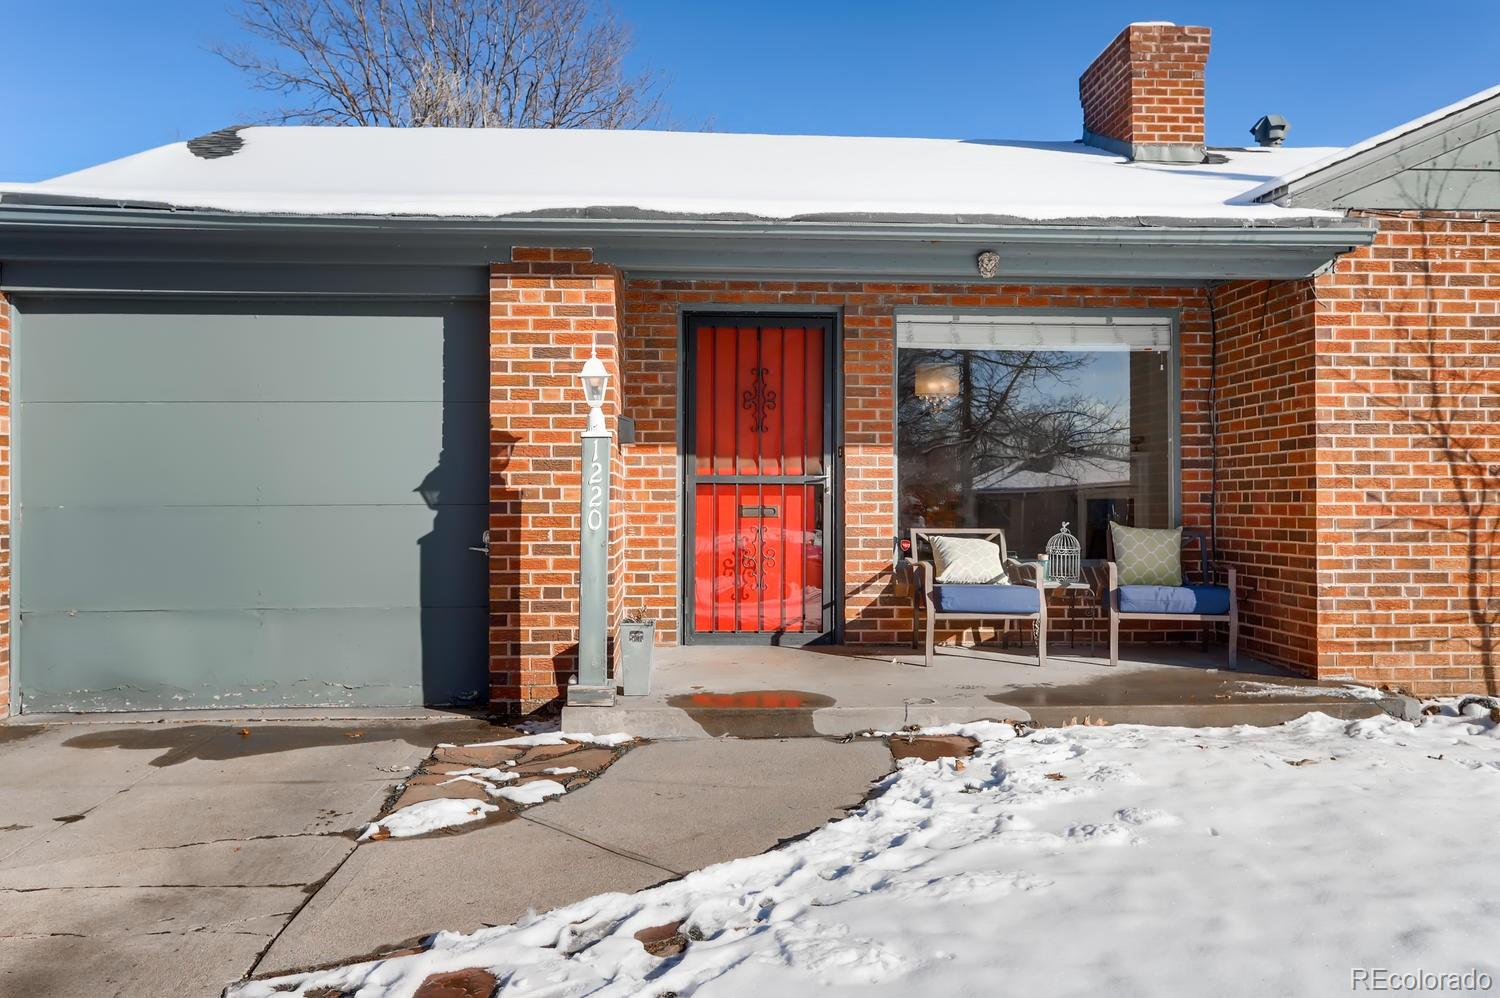 MLS# 3441277 - 2 - 1220 Eudora Street, Denver, CO 80220